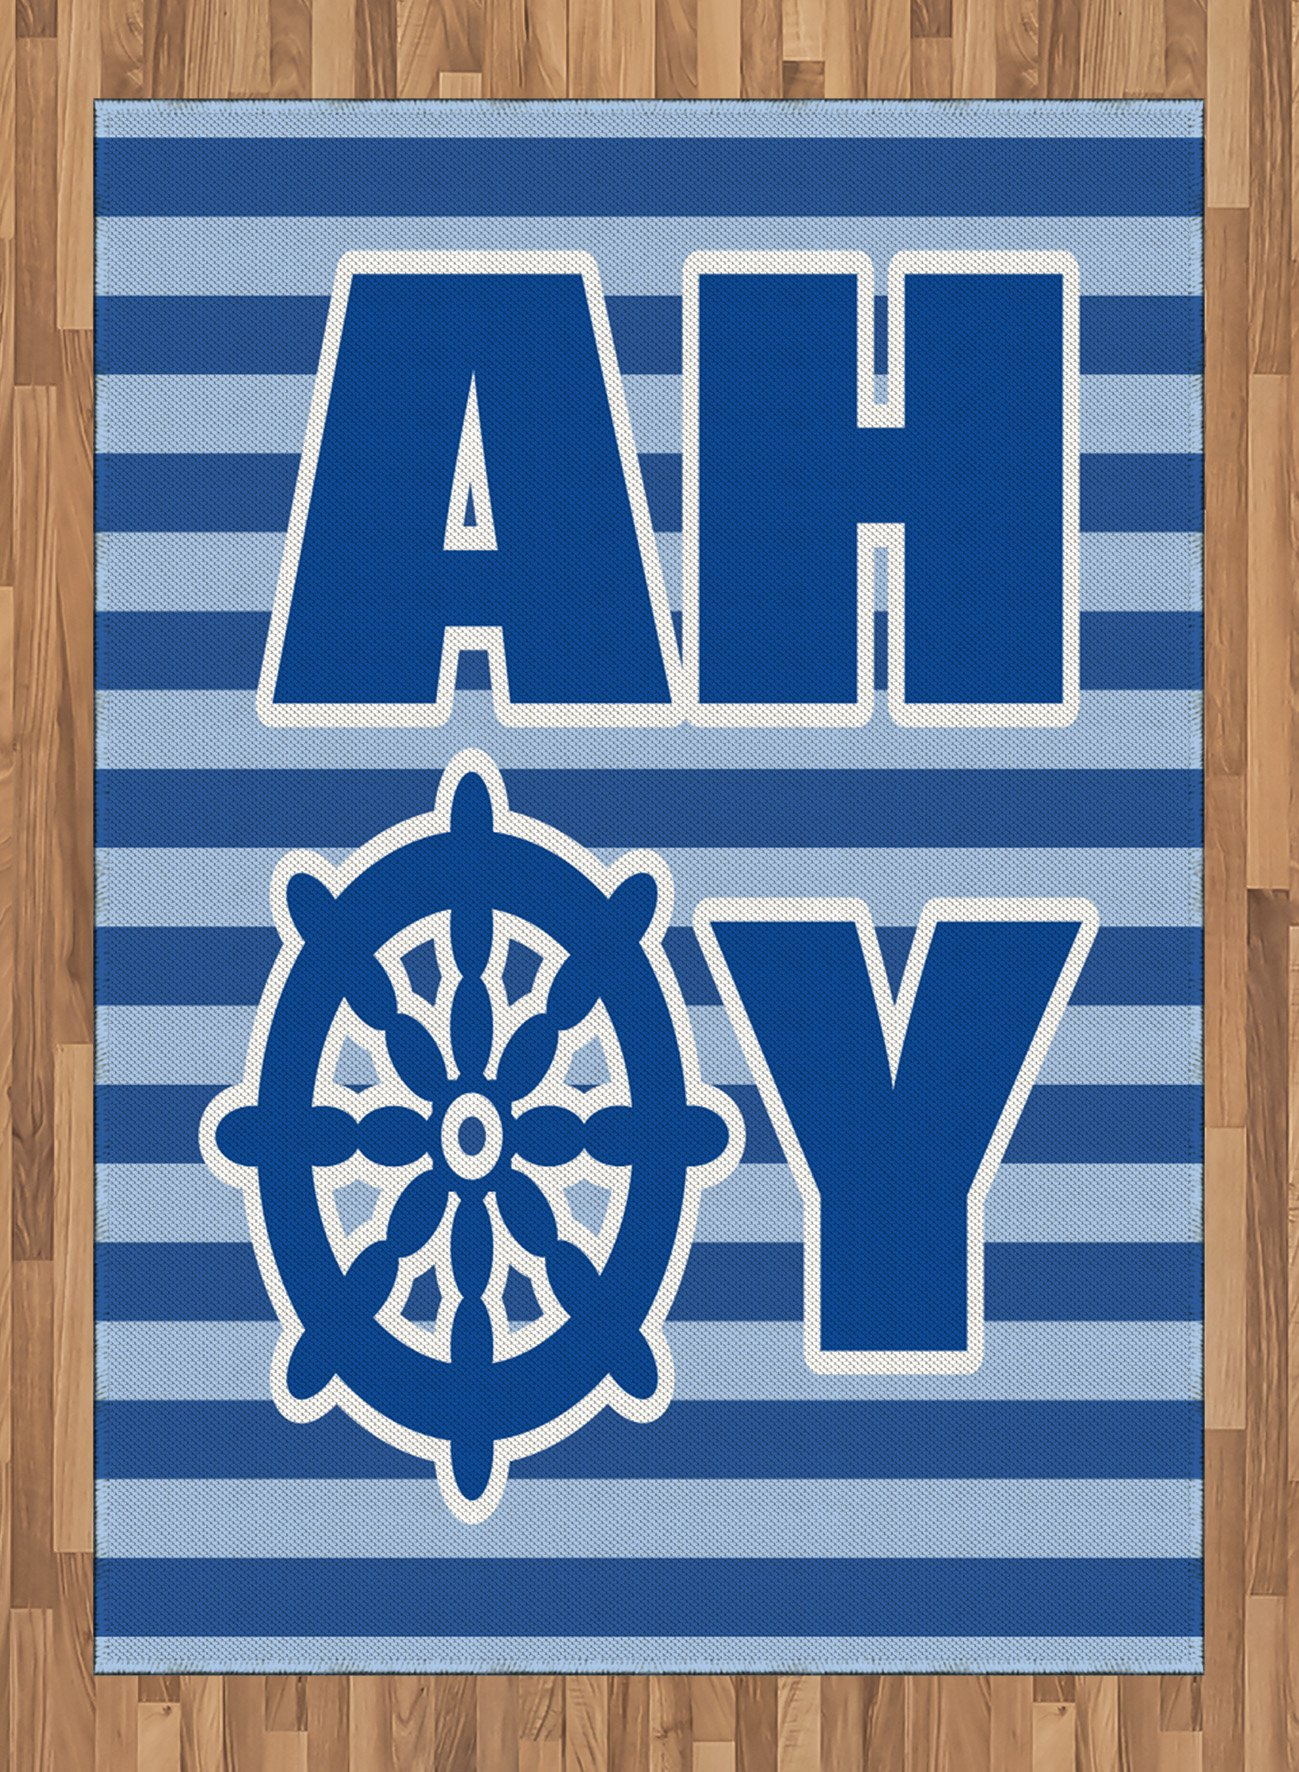 Ahoy Its a Boy Area Rug by Ambesonne, Ahoy Written with Nautical Wheel Striped Nursery Wall Art Design, Flat Woven Accent Rug for Living Room Bedroom Dining Room, 5.2 x 7.5 FT, Blue Pale Blue White